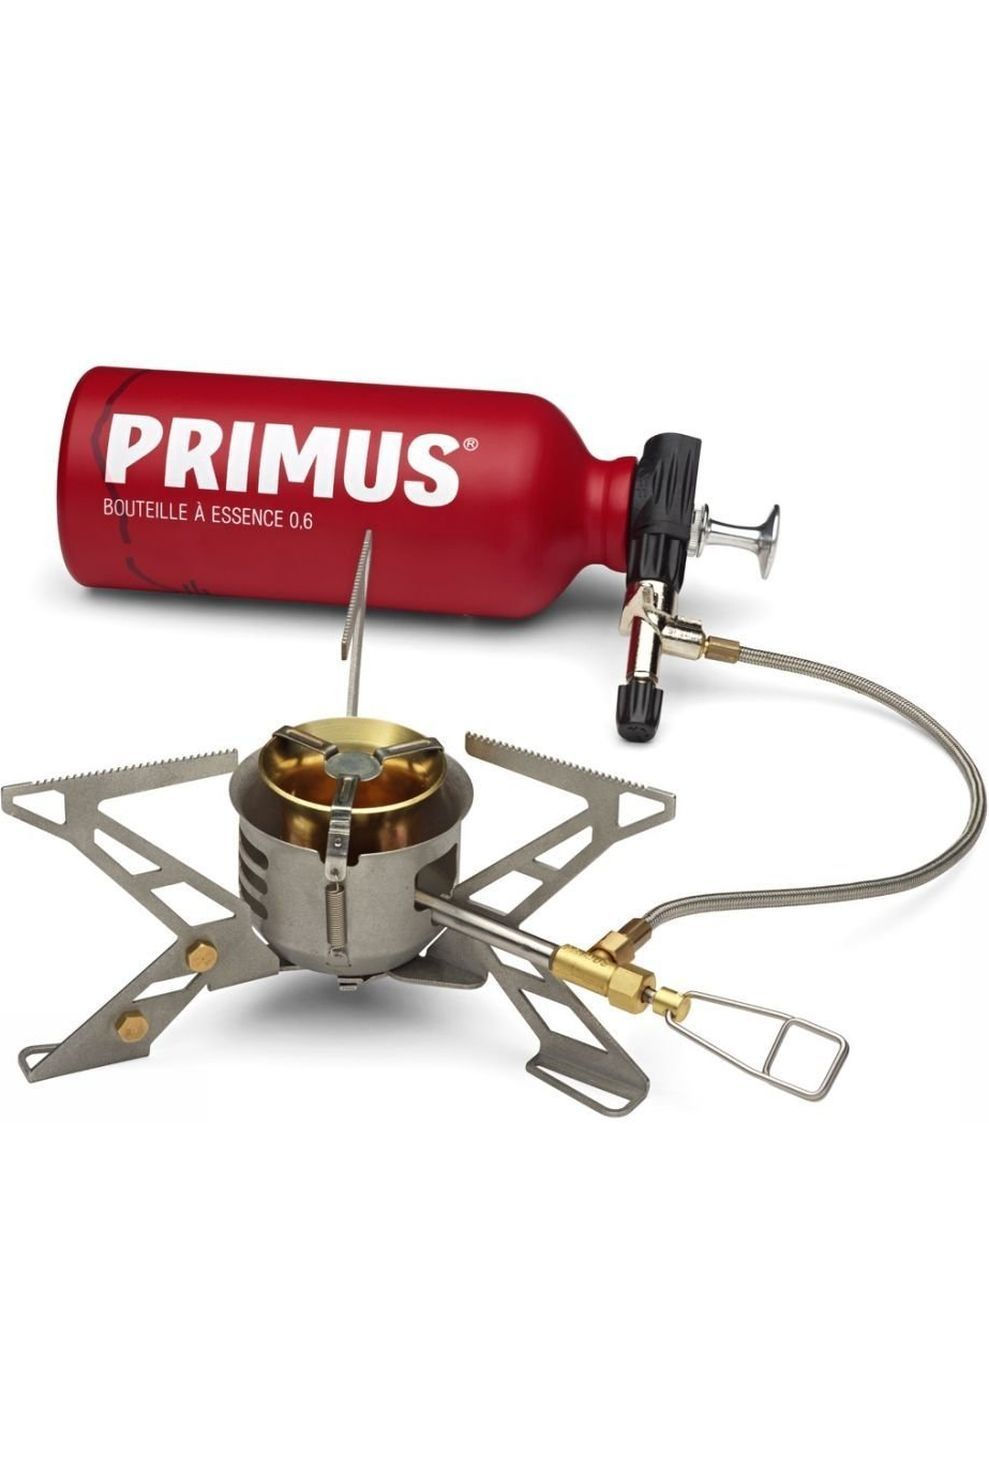 Primus Brander Omnifuel II With Bottle And Pouch - - Transparant